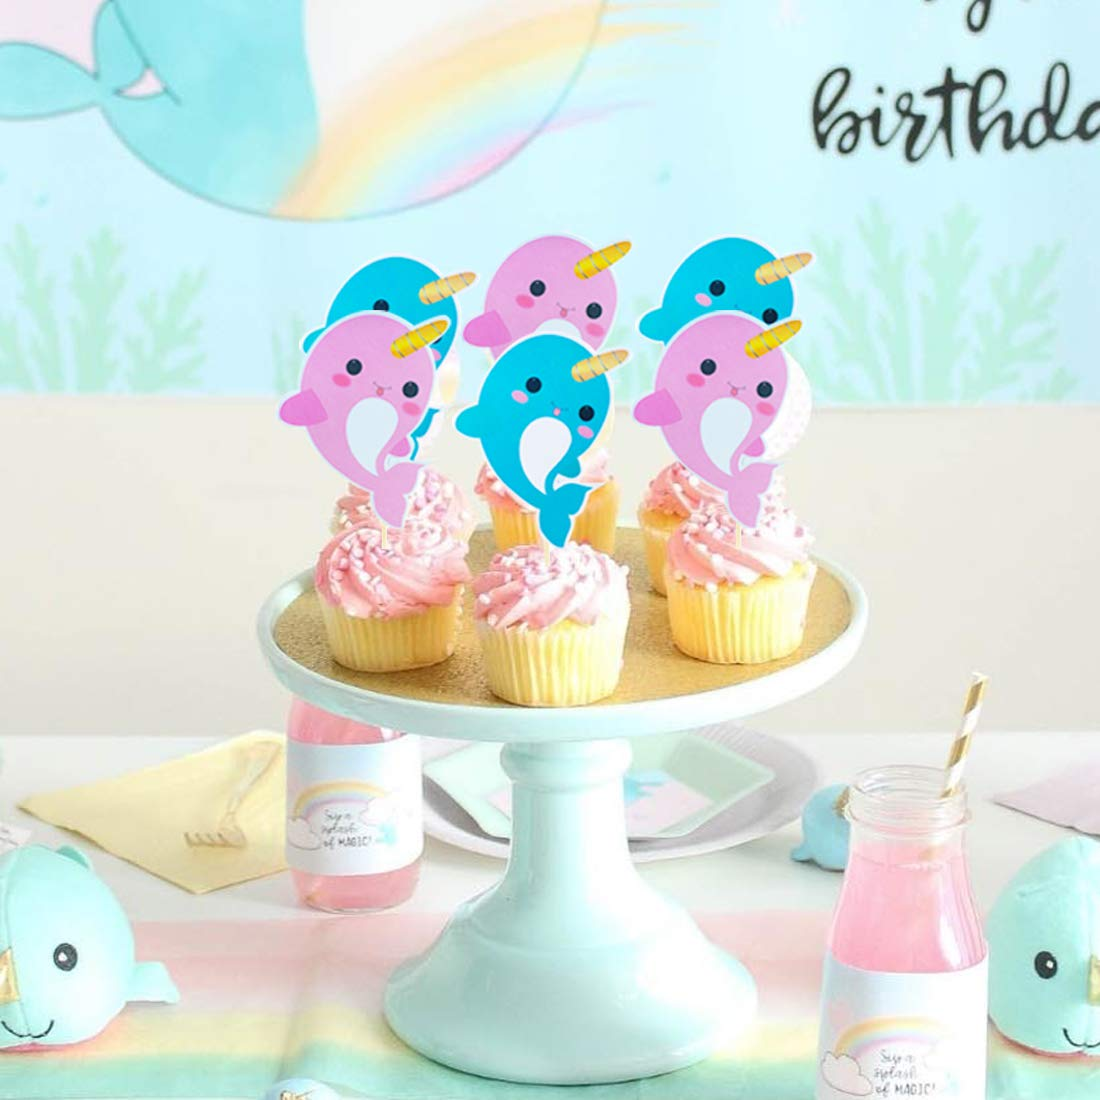 Narwhal Party Decorations Birthday Party Supplies Under the Sea Baby Shower for Girls Boys 1st Birthday